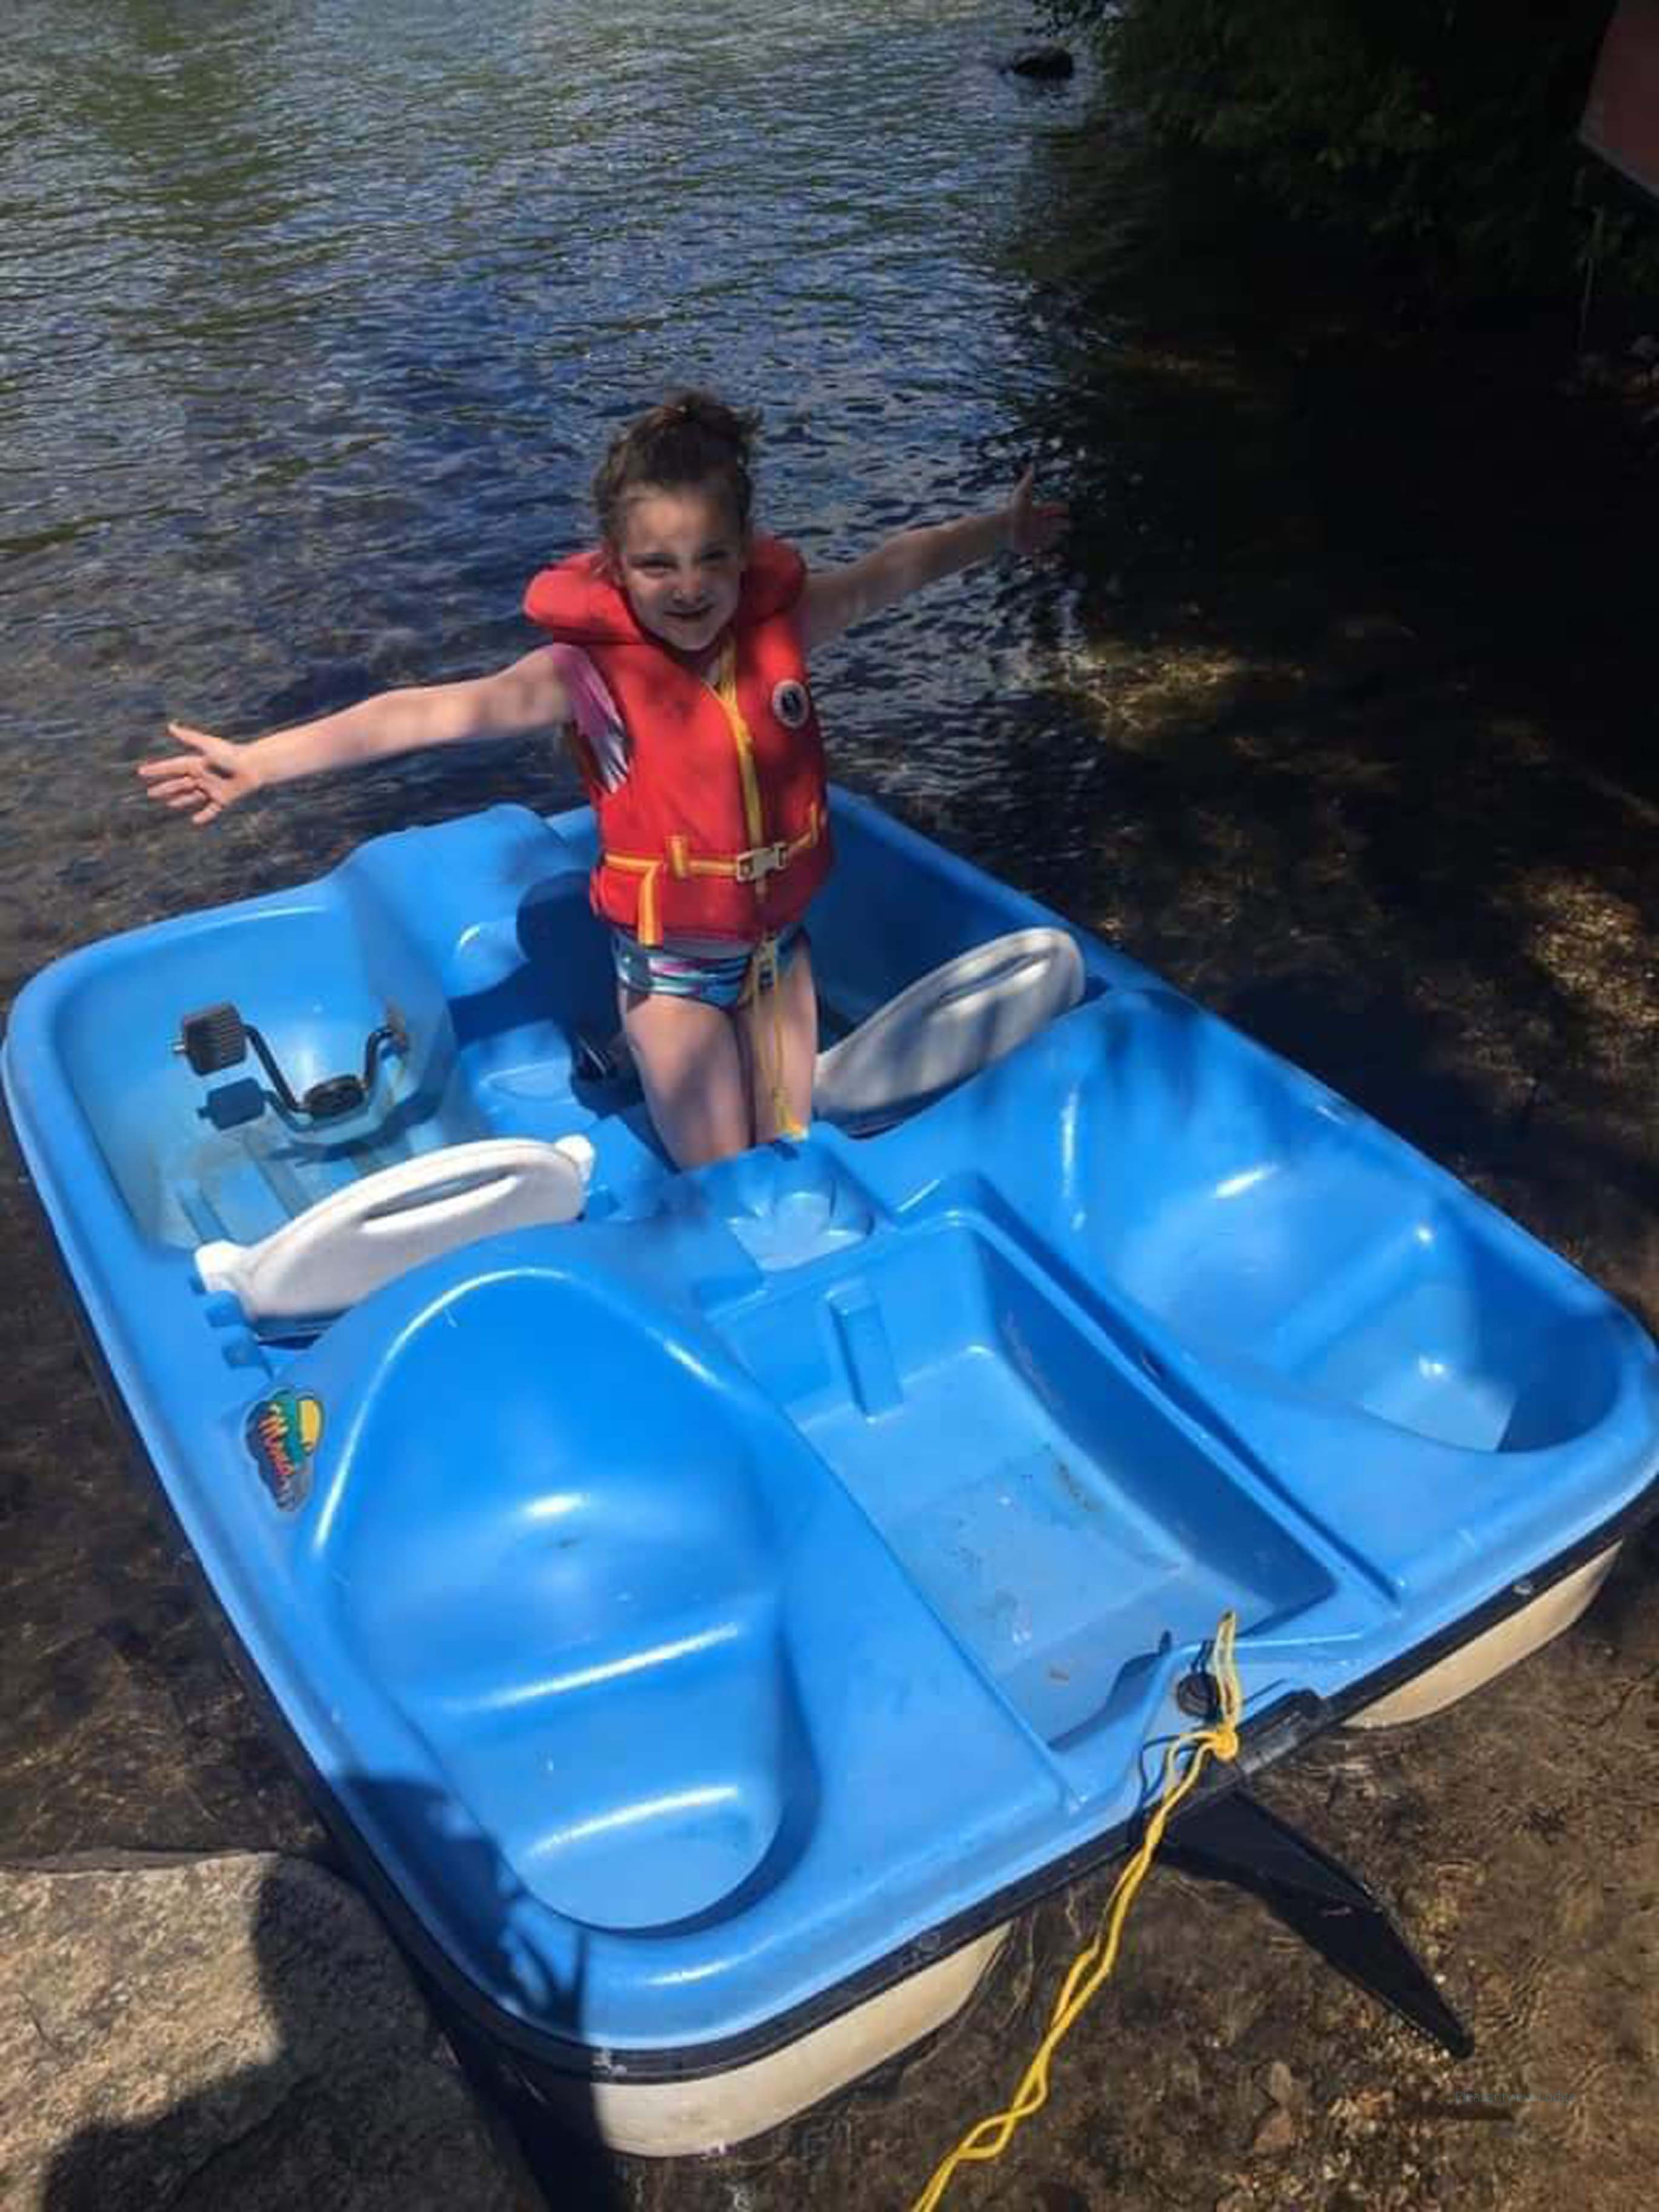 Pedal boat paddle boat